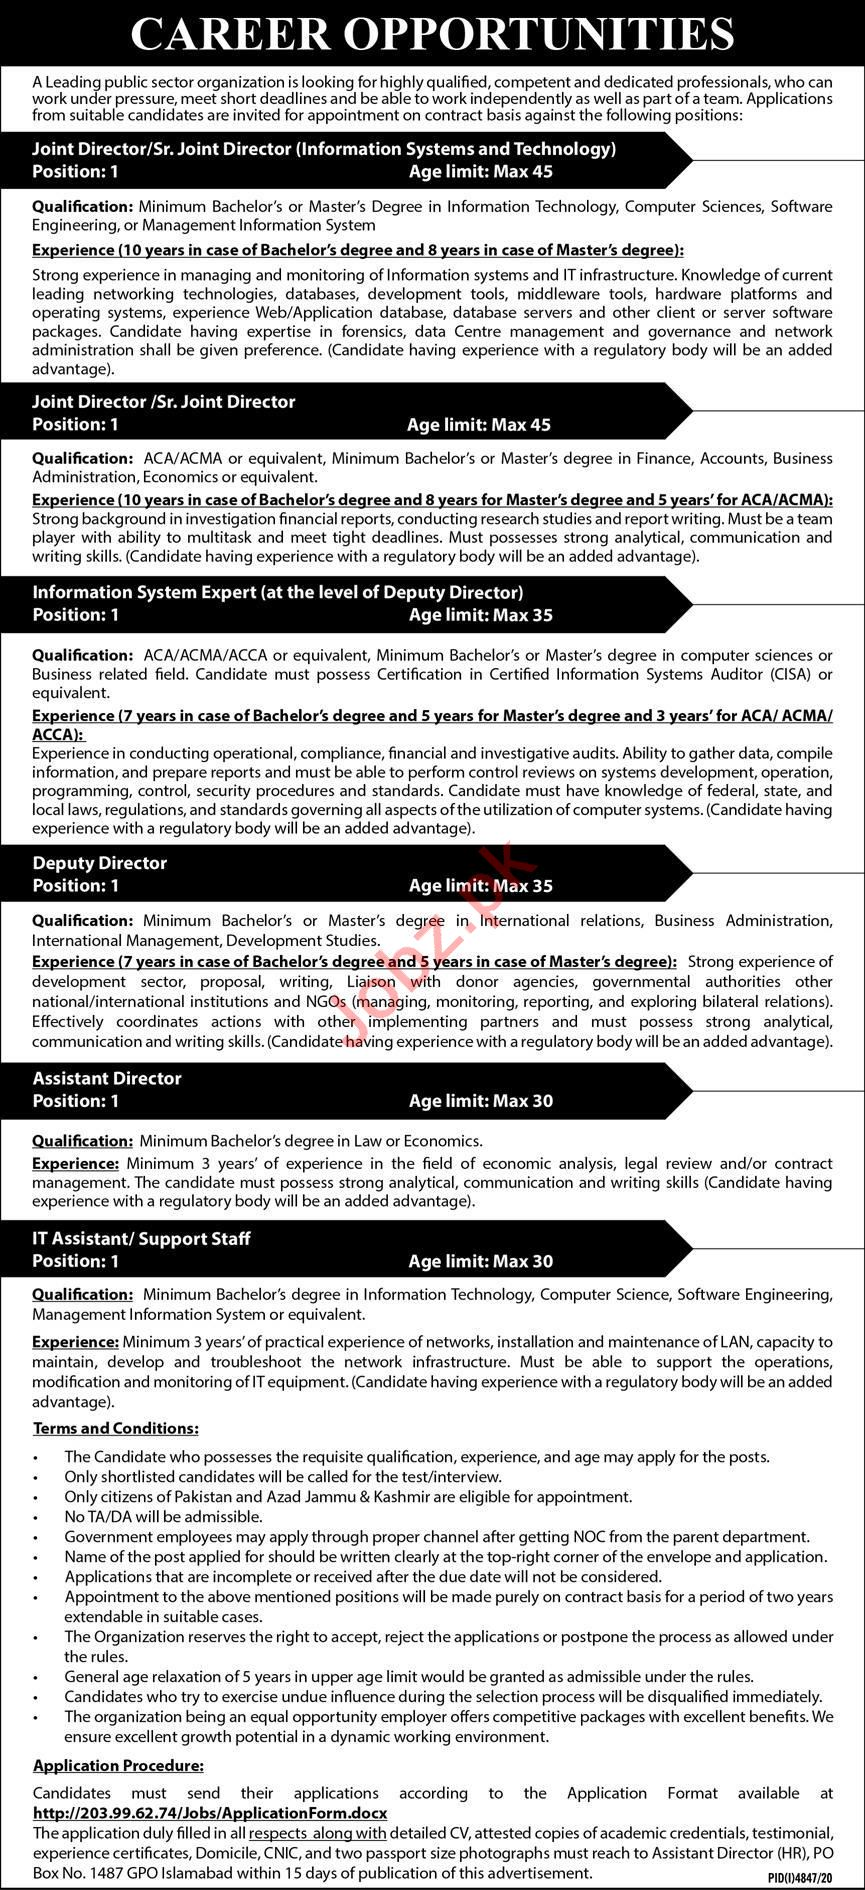 P O Box No 1487 GPO Islamabad Jobs 2021 for Joint Director